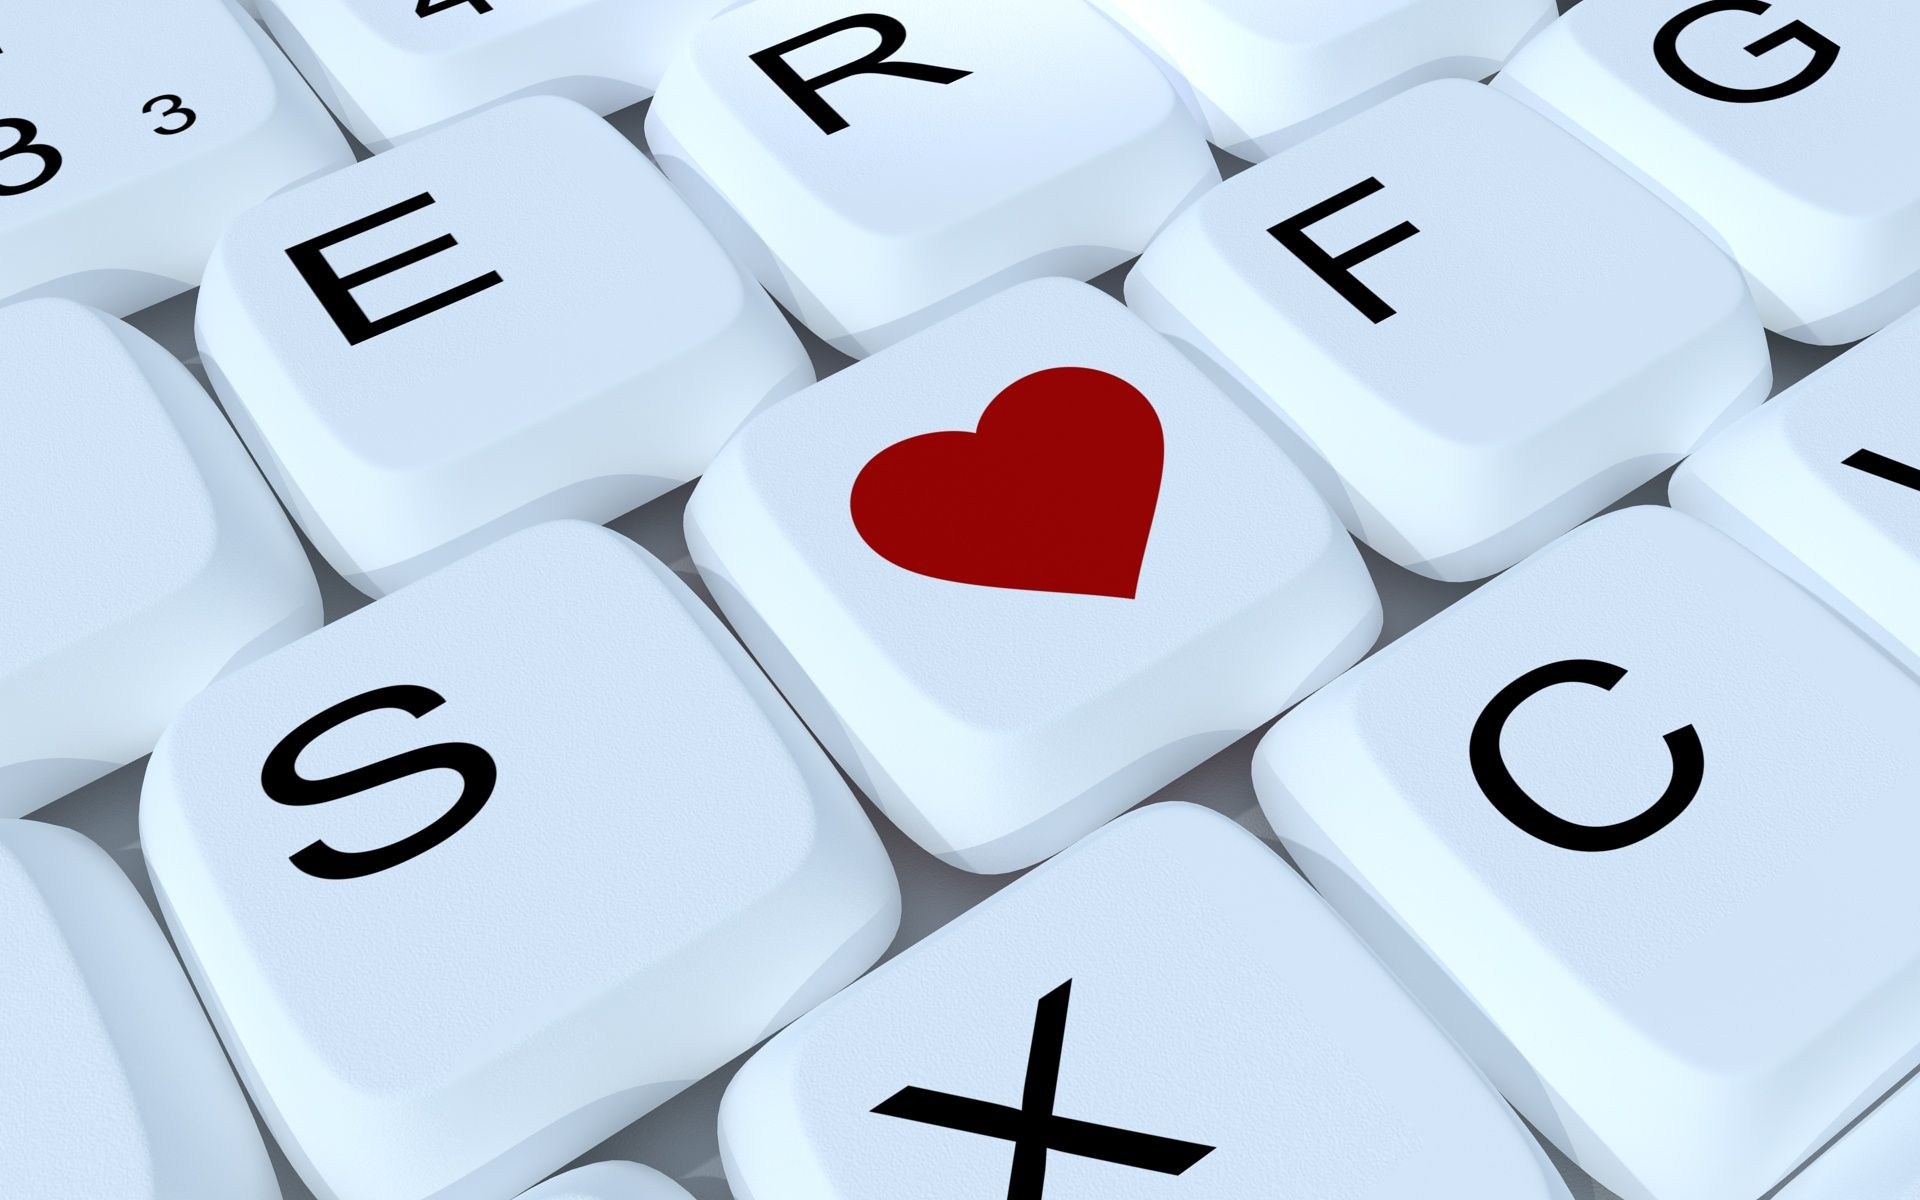 Download Wallpaper 1920x1200 Love, Keyboard, Heart, Letter ...